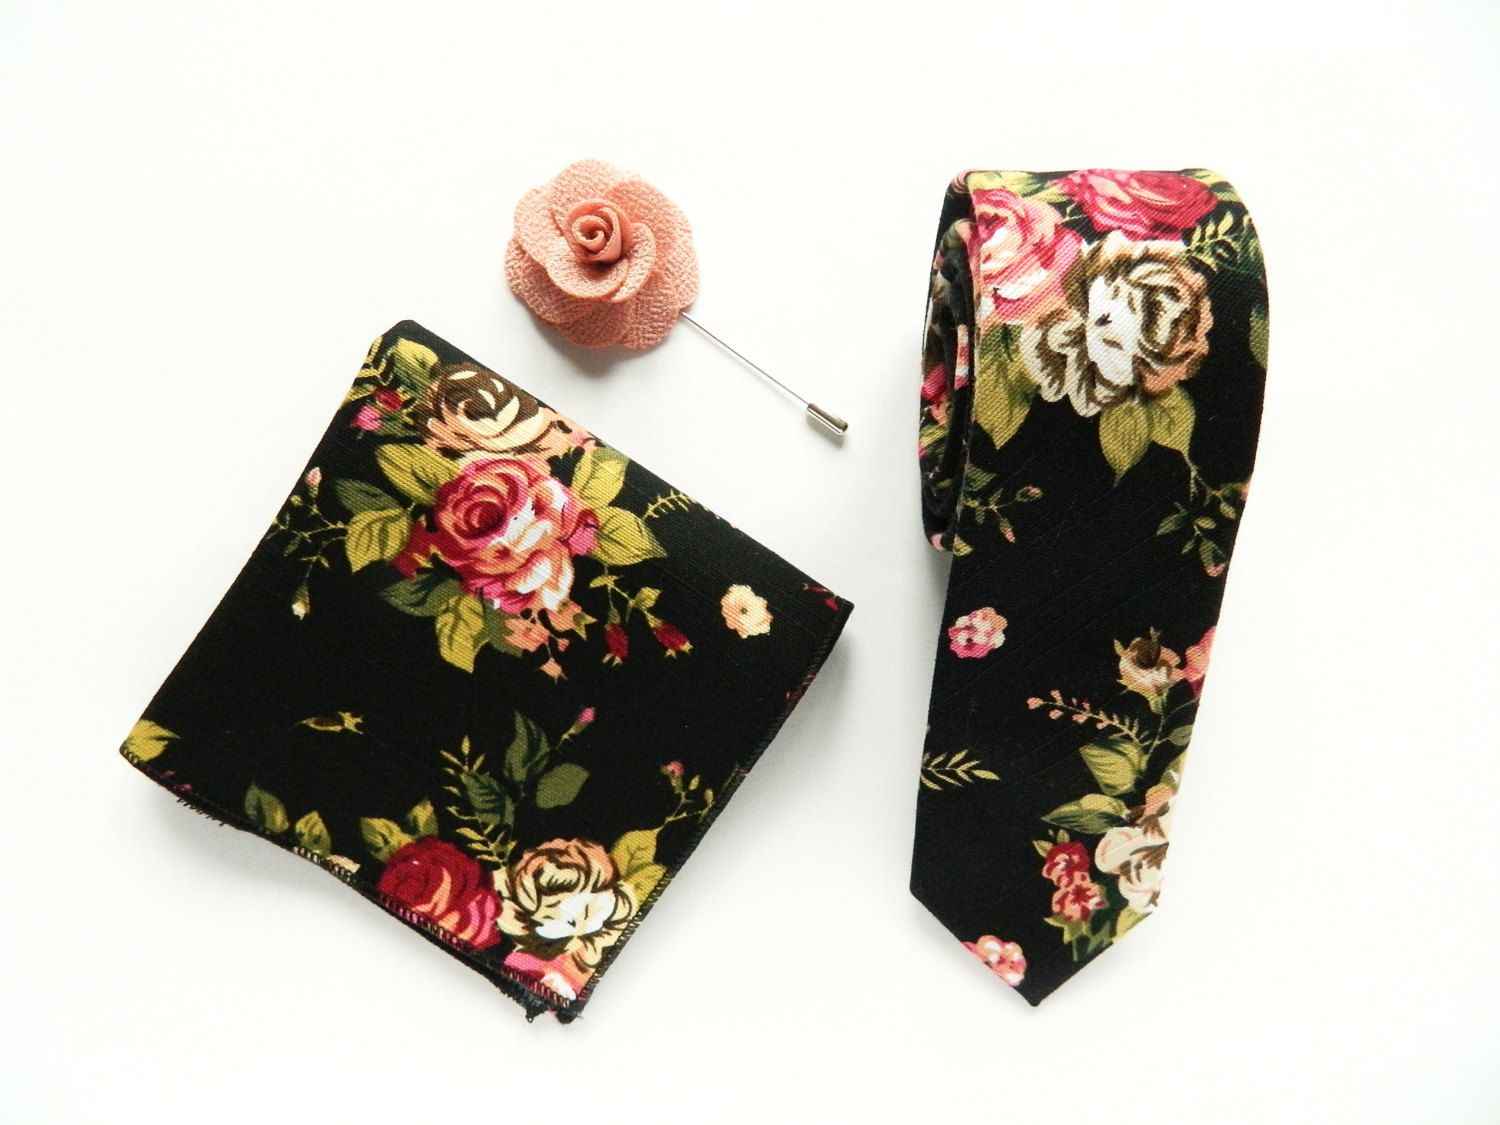 a98ea34efbbe Men's Black Floral skinny tie Pocket Square Wedding linen Floral Prints  Wedding Gifts for Men Groomsmen Boutonniere Lapel Pin by TheStyleHubTrends  on Etsy